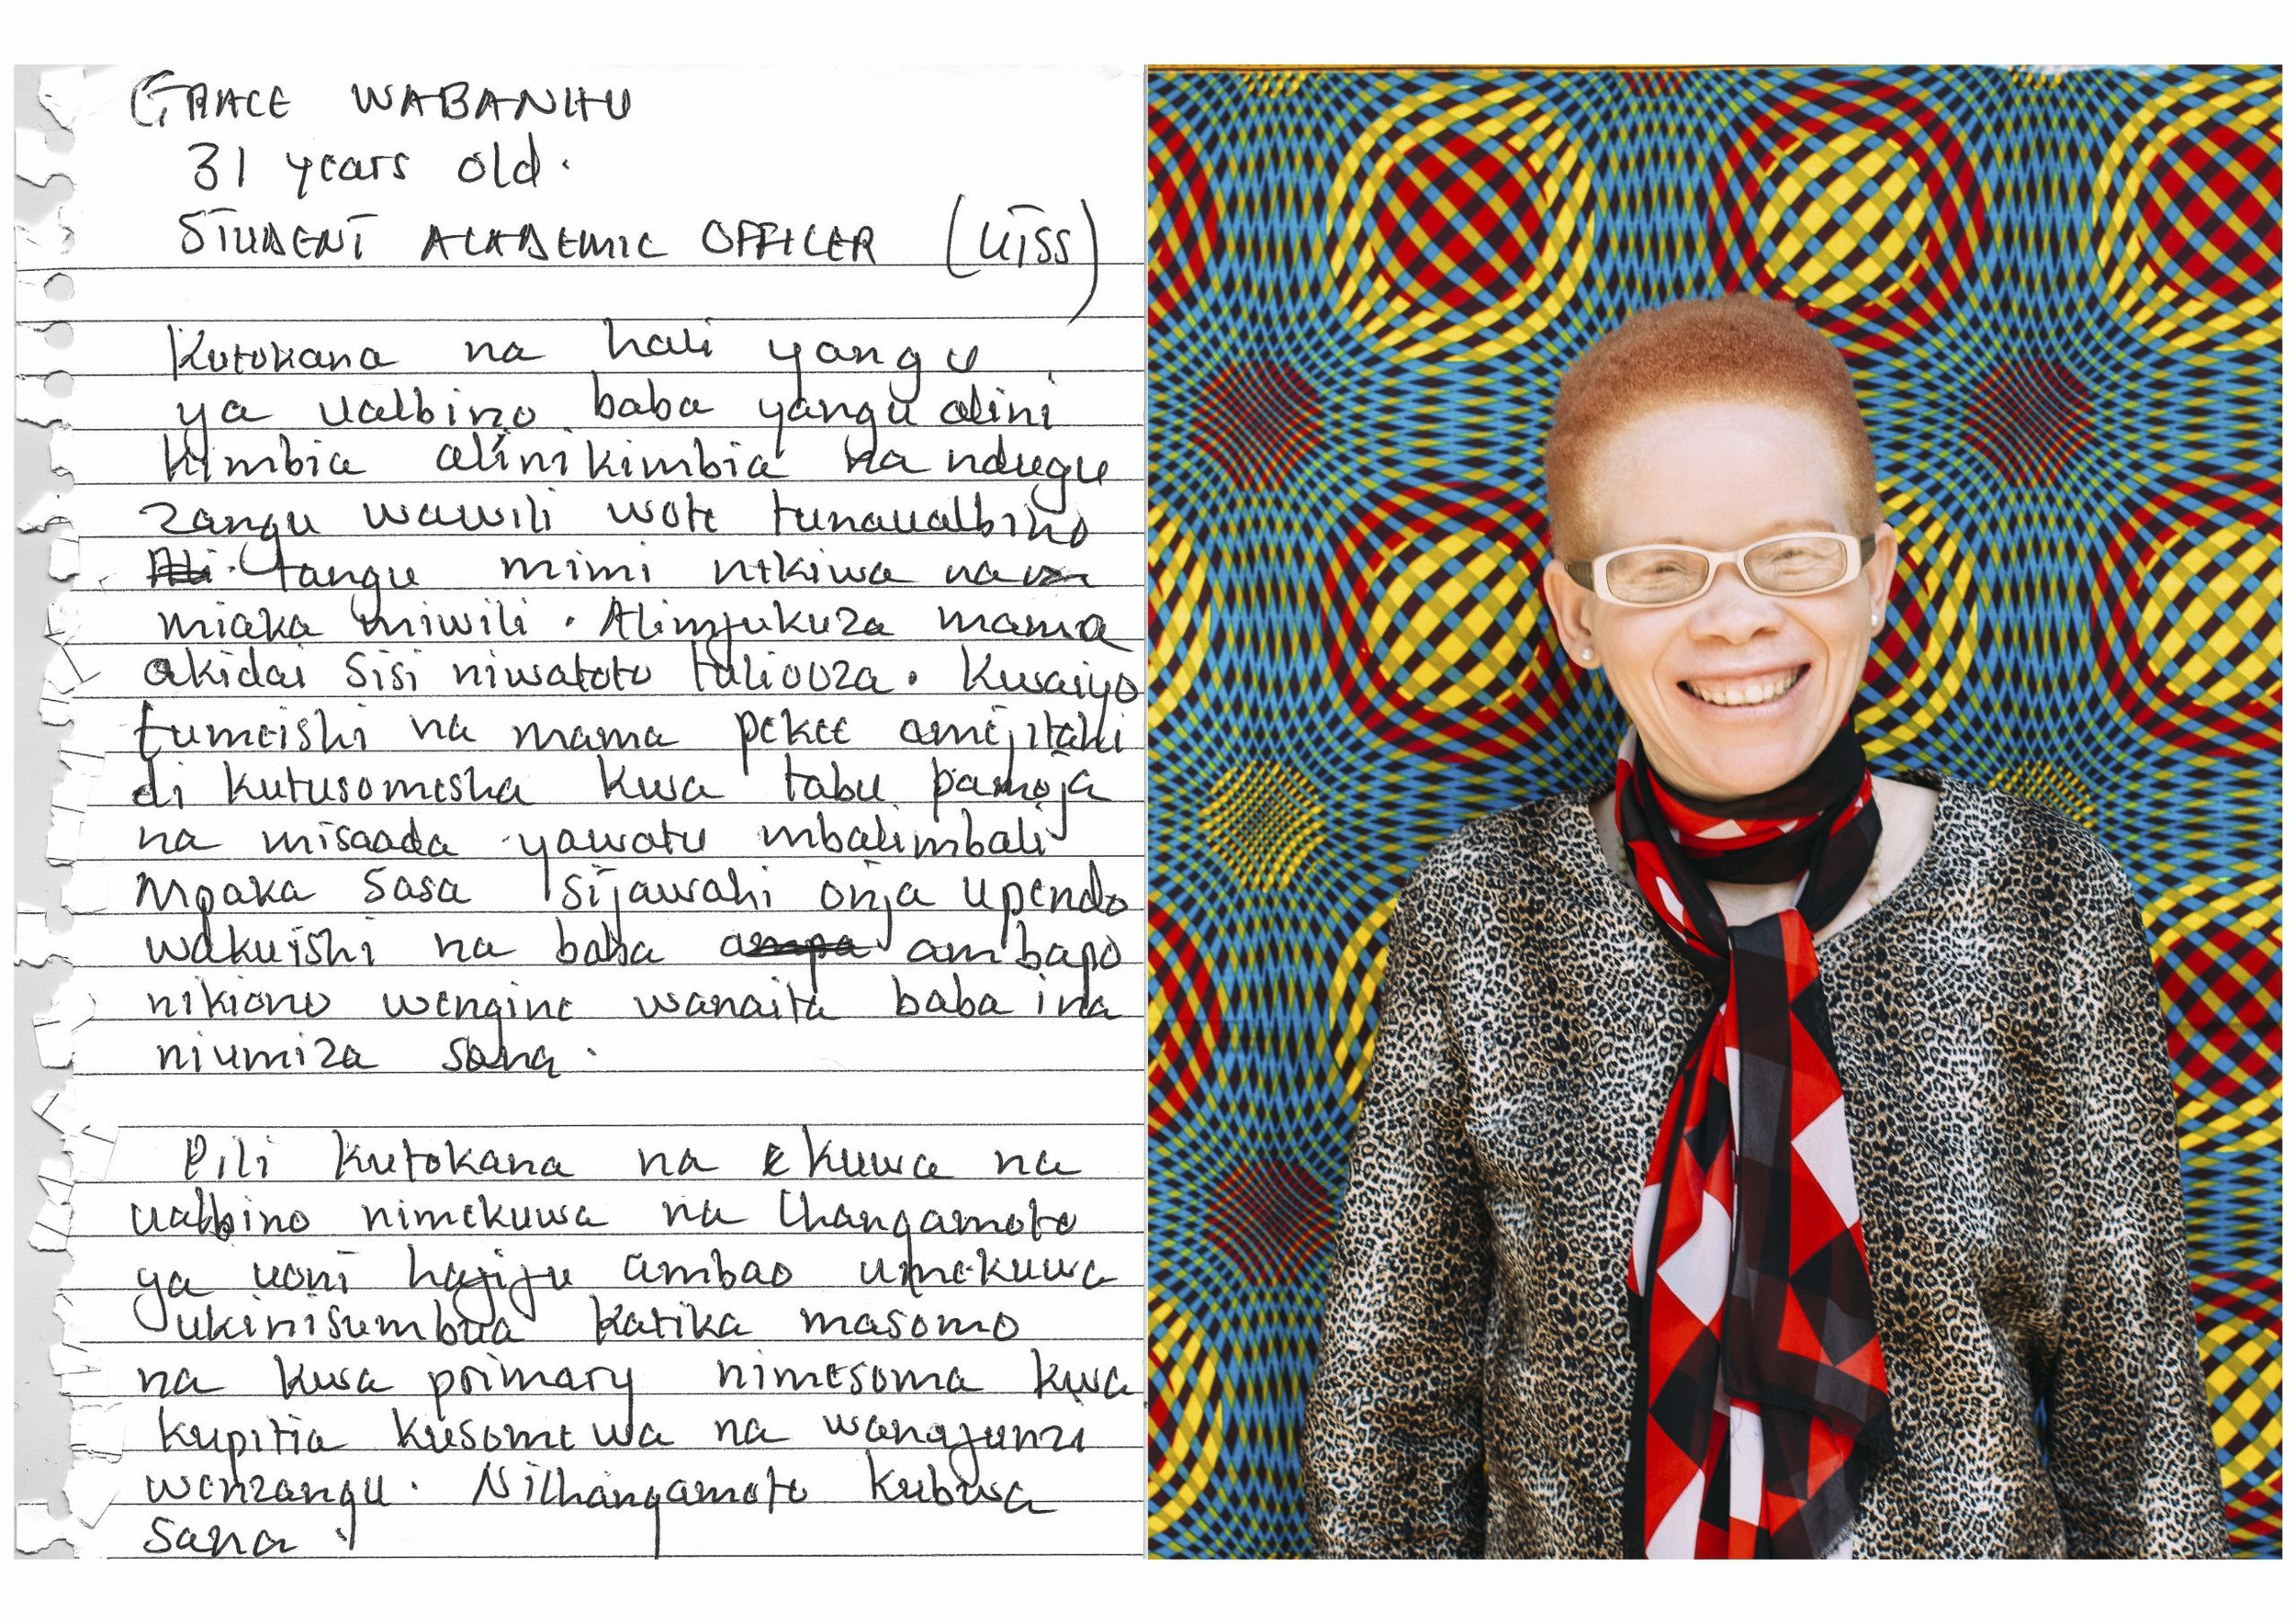 Grace Wabanhu      31 years old      Student Academic Officer - UTSS     Because of my albinism my father abandoned us - me and my two siblings, who are all people with albinism. It happened when I was two years old. He chased away our mother and claimed that we were rotten children. So we lived alone and my mother did her best to make sure we were able to obtain an education, and sometimes she received help from others. I do not know what a fathers love feels like and I get emotional when I see others have a male figure in their lives to call fathers.    Second, due to my albinism condition I have a challenge of poor eyesight which was a major setback in my studies. I completed a degree in primary education through the help of other students who read materials out loud for me and would transcribe from the blackboard and books. It is still a very big challenge in my life.